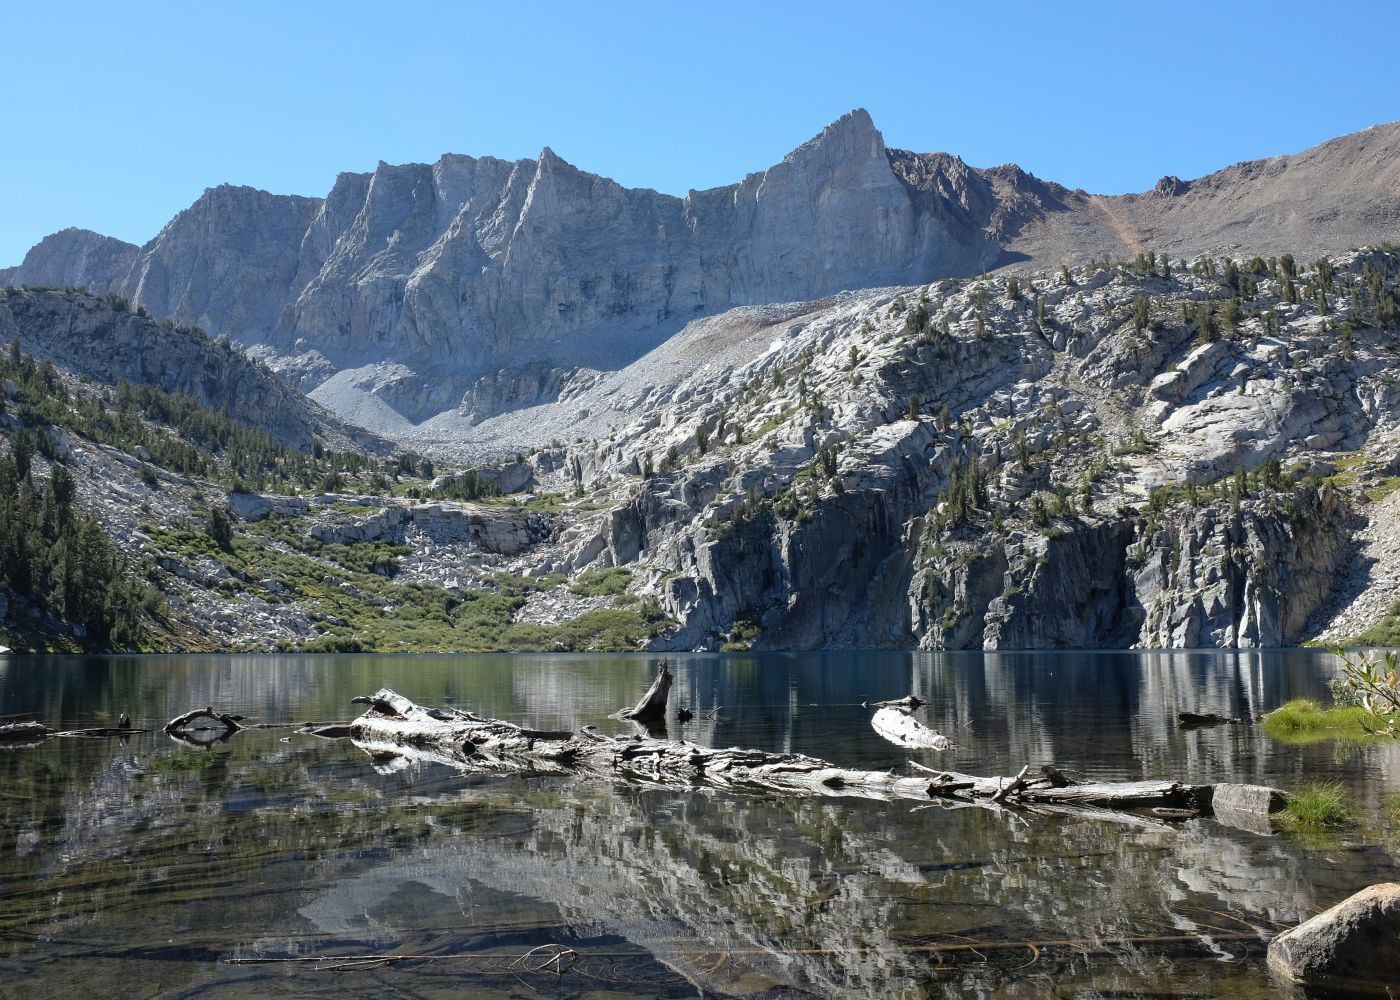 kings canyon national pk mature dating site Mysacom - san antonio news, events, restaurants, real estate, and spurs updates from the digital home of the san antonio express-news.